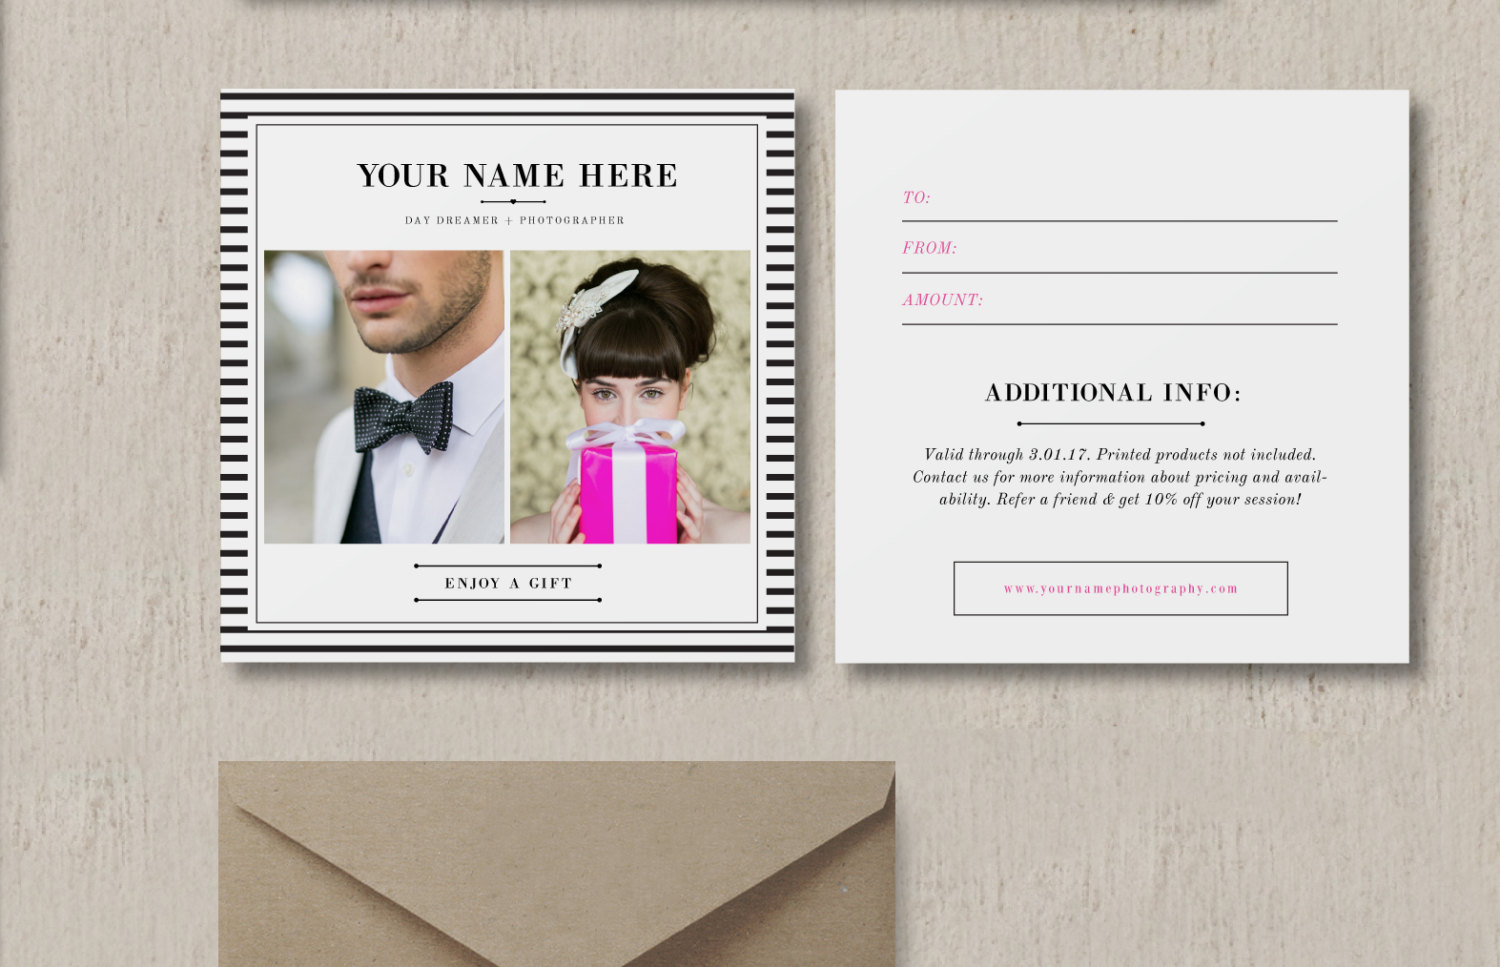 Gift Card Design for Wedding   Portrait Photographers   Photography     Gift Card Design for Wedding   Portrait Photographers   Photography Gift  Certificate Template